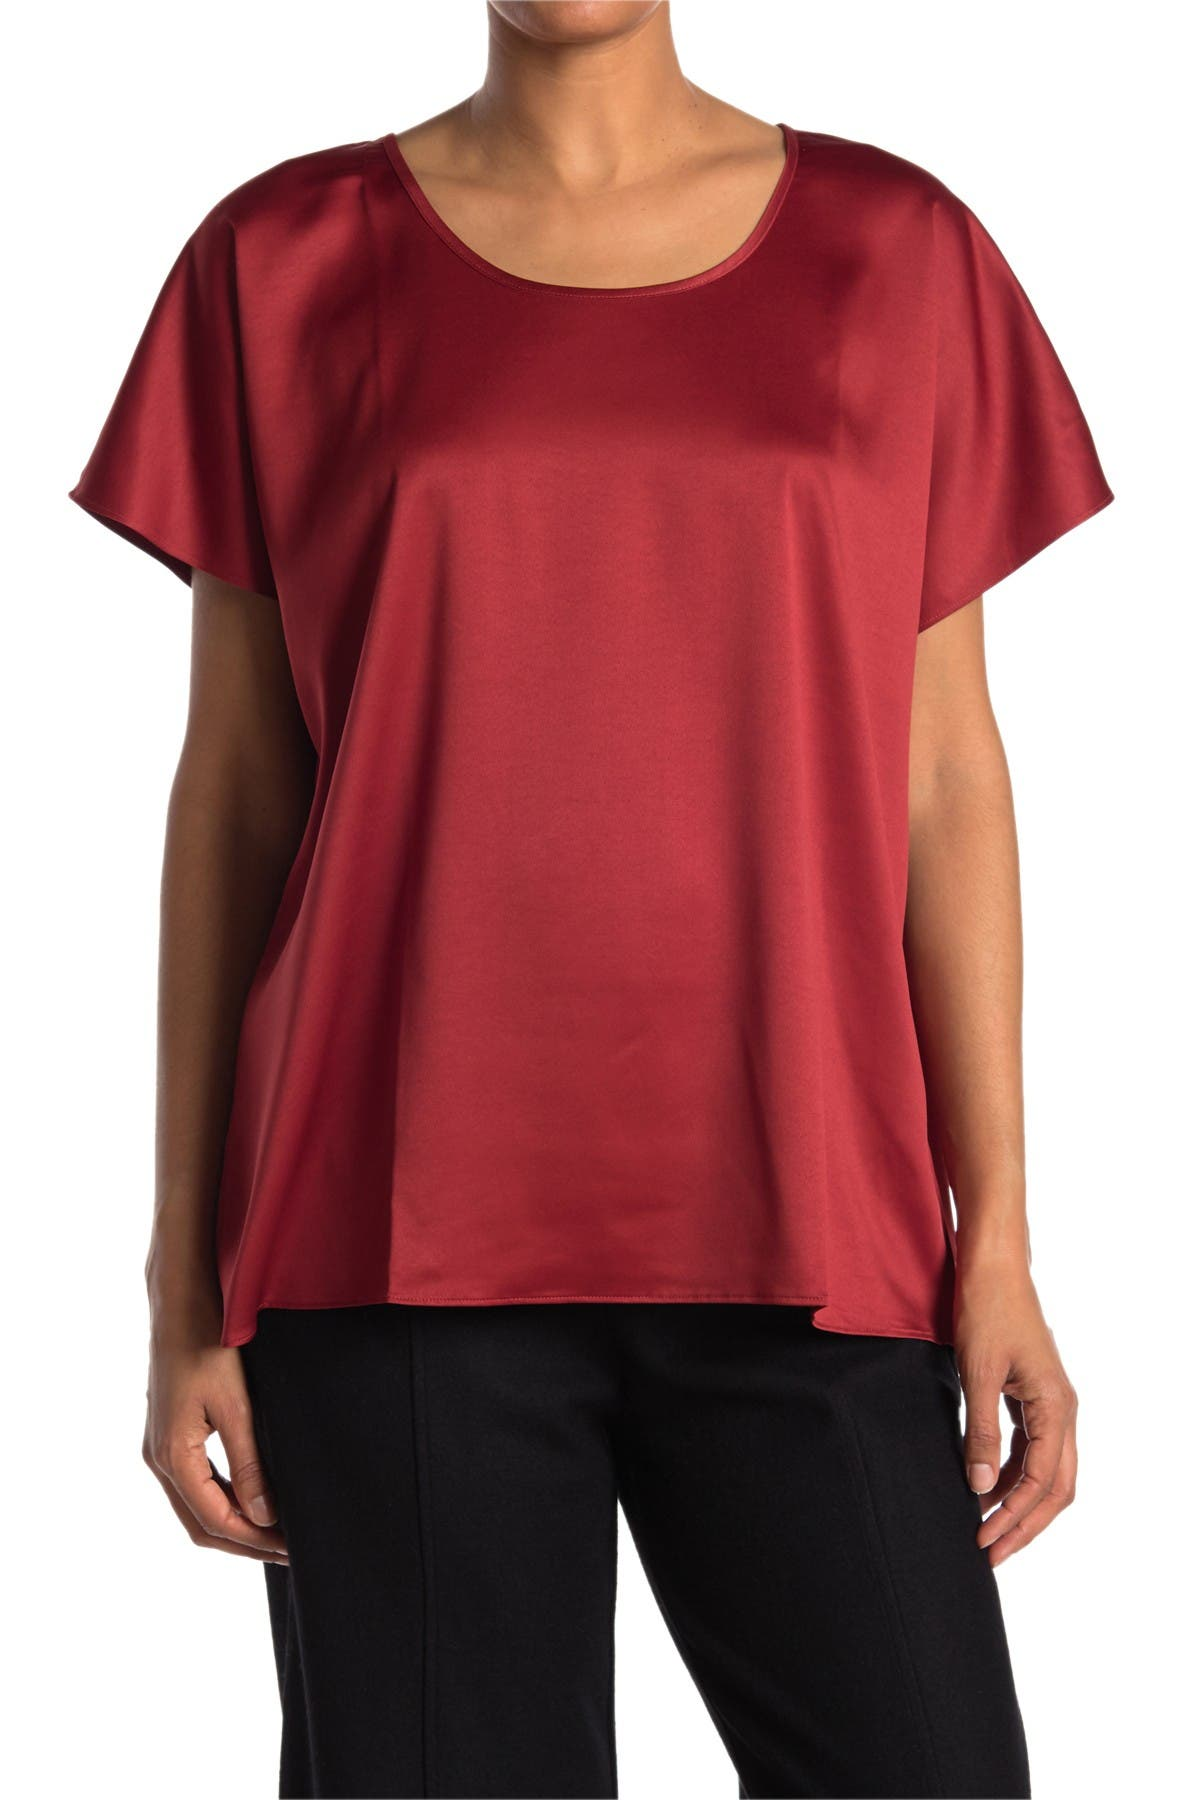 Image of Eileen Fisher Scoop Neck Short Sleeve Boxy Satin Top